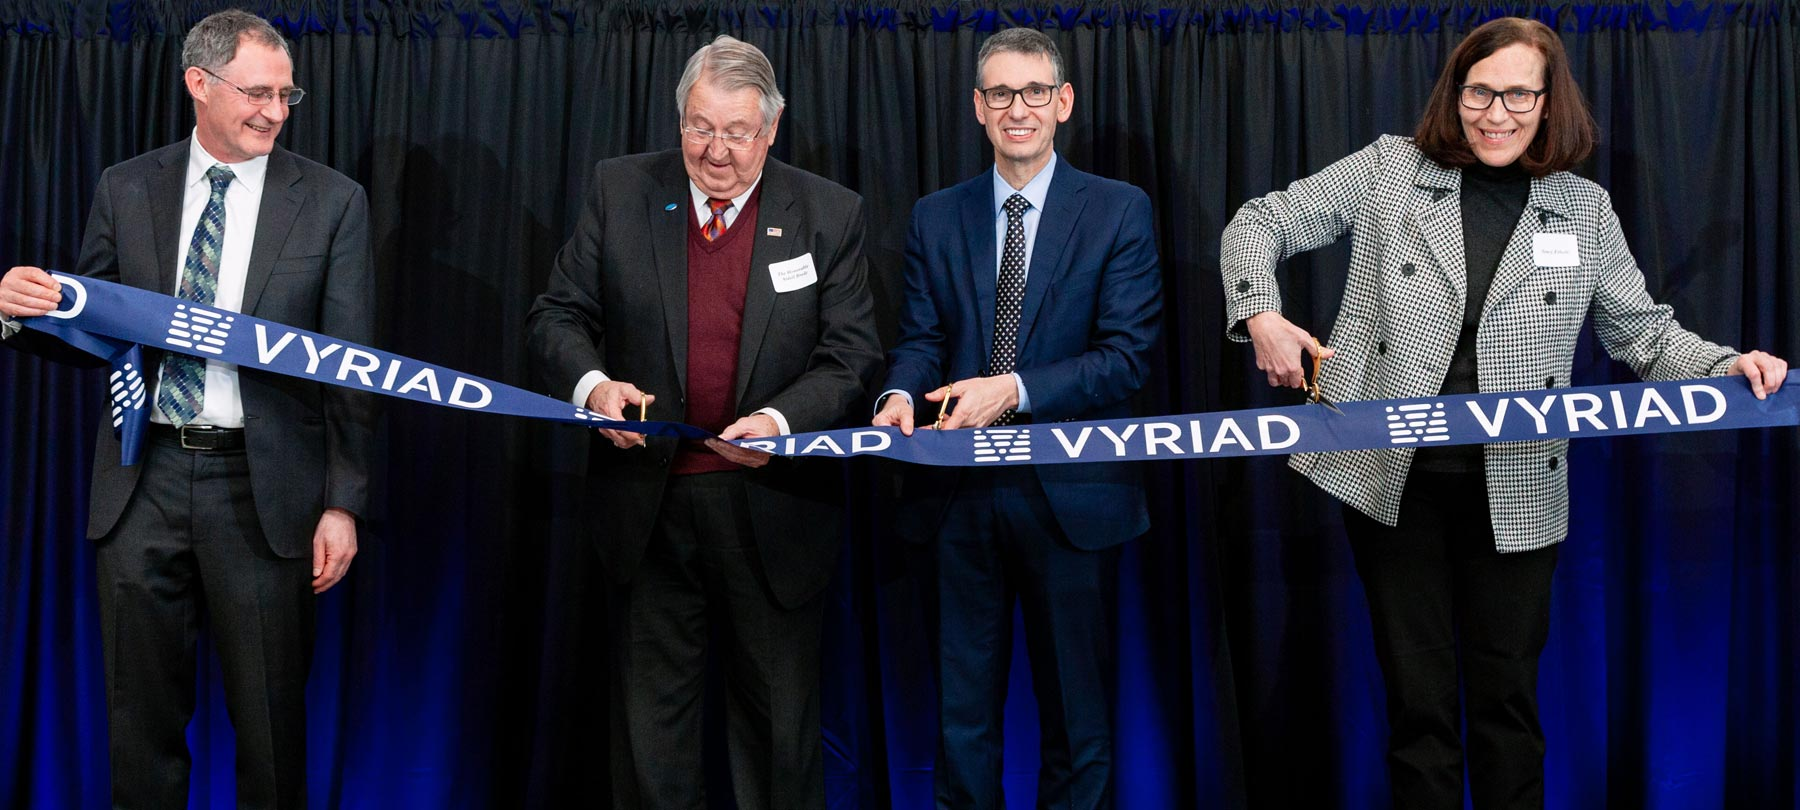 Vyriad Ribbon-Cutting Ceremony | Flad Architects